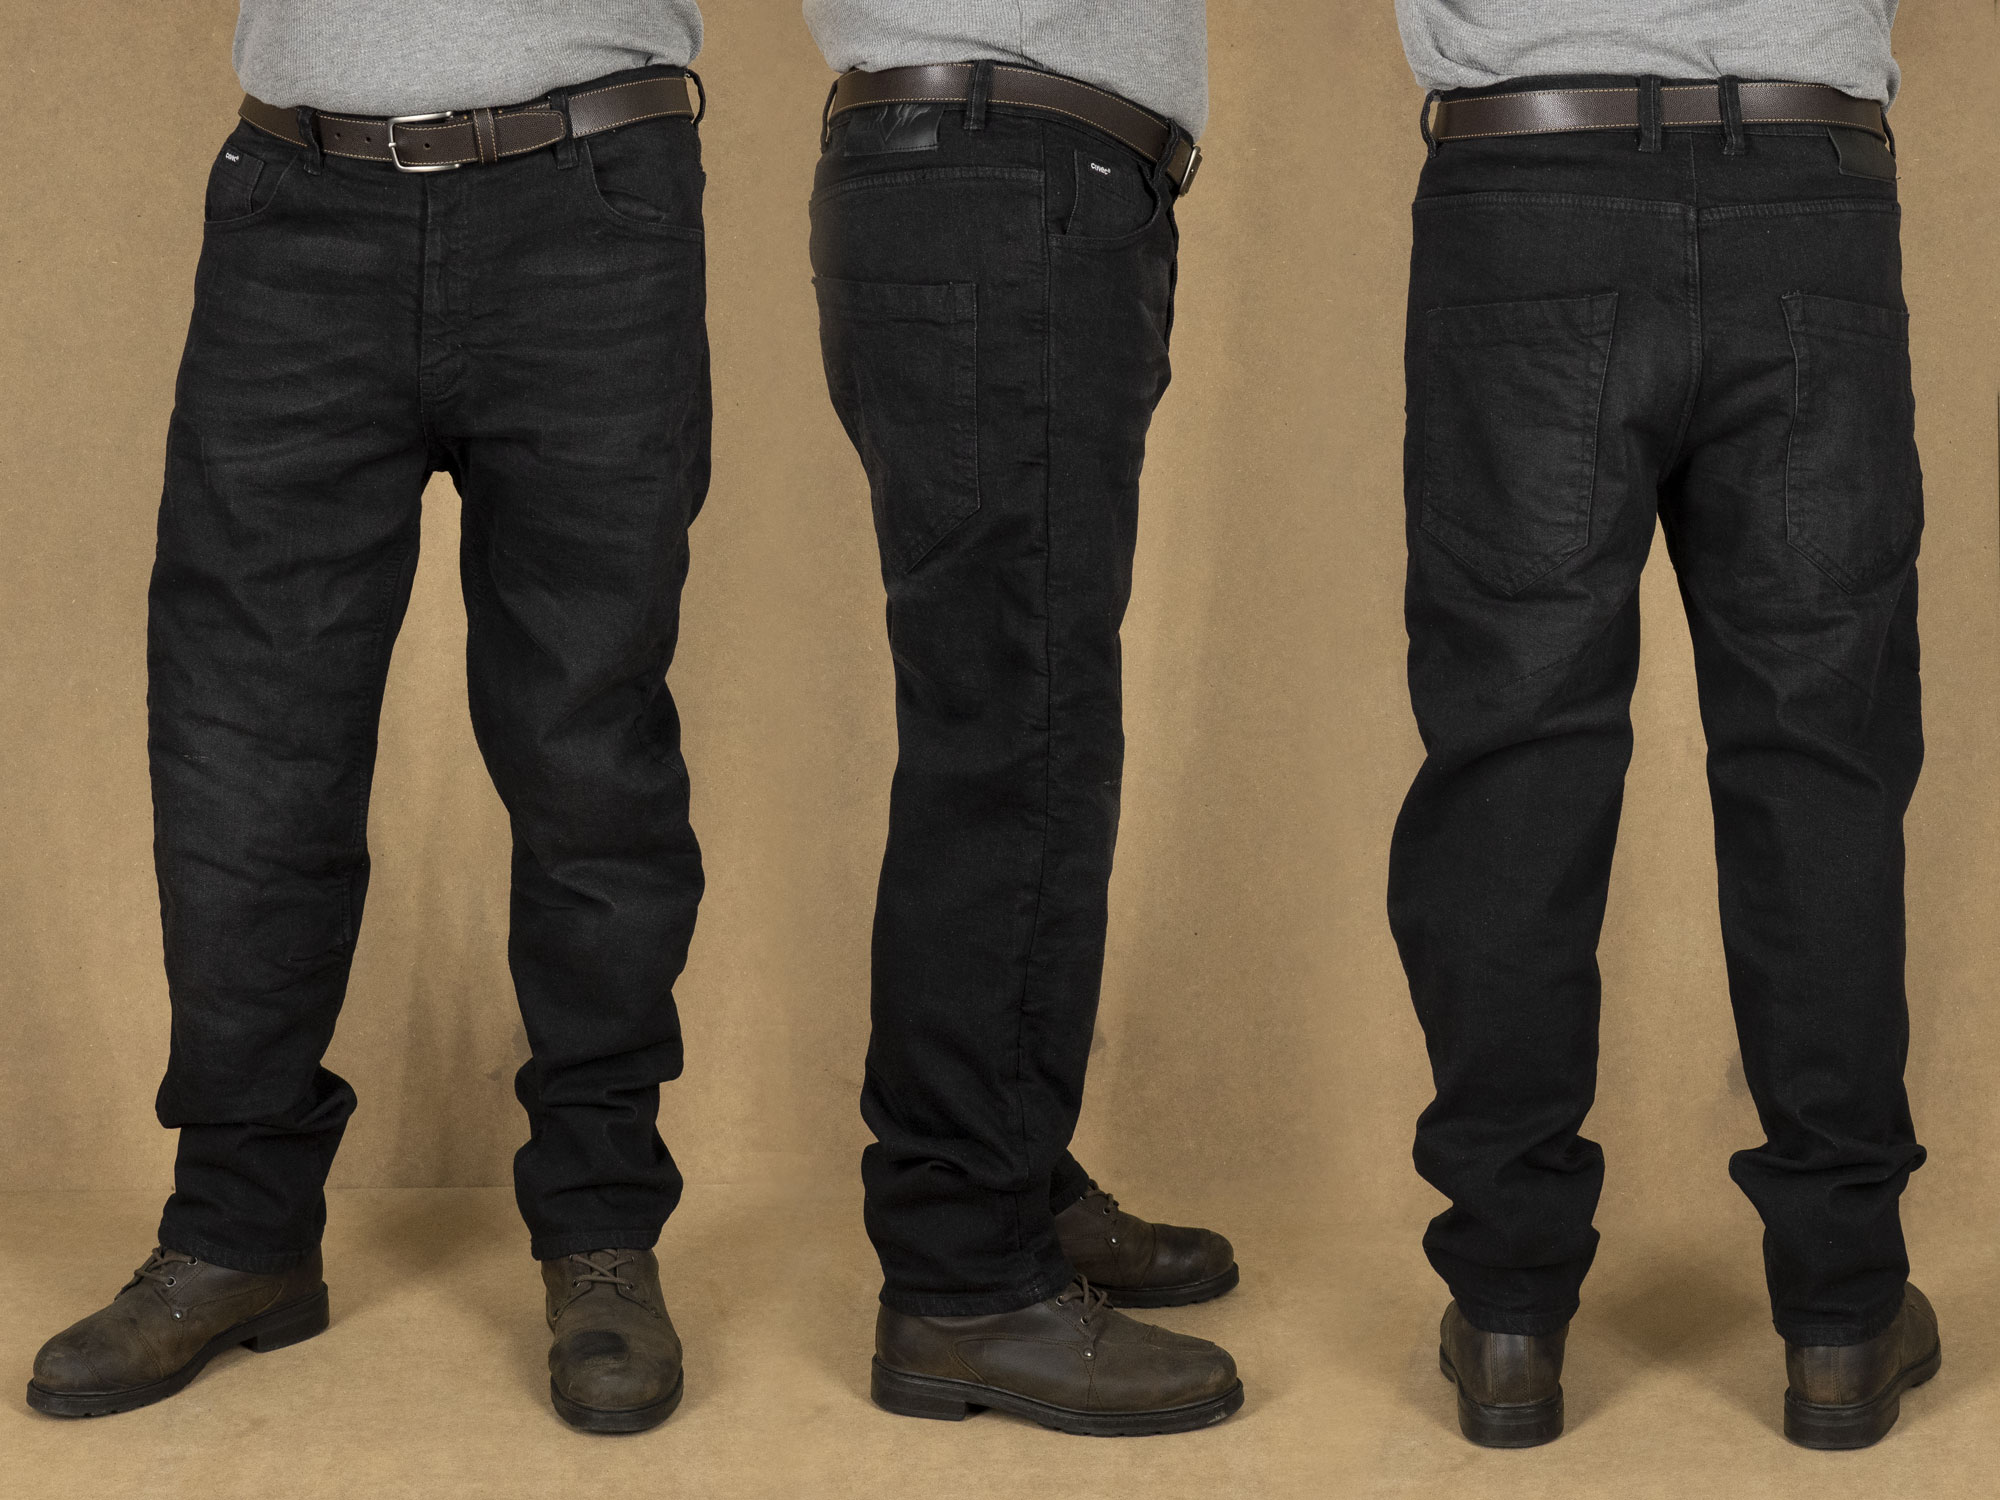 Bull It Sp120 Lite Jeans Review A Slim Fit For The Ride